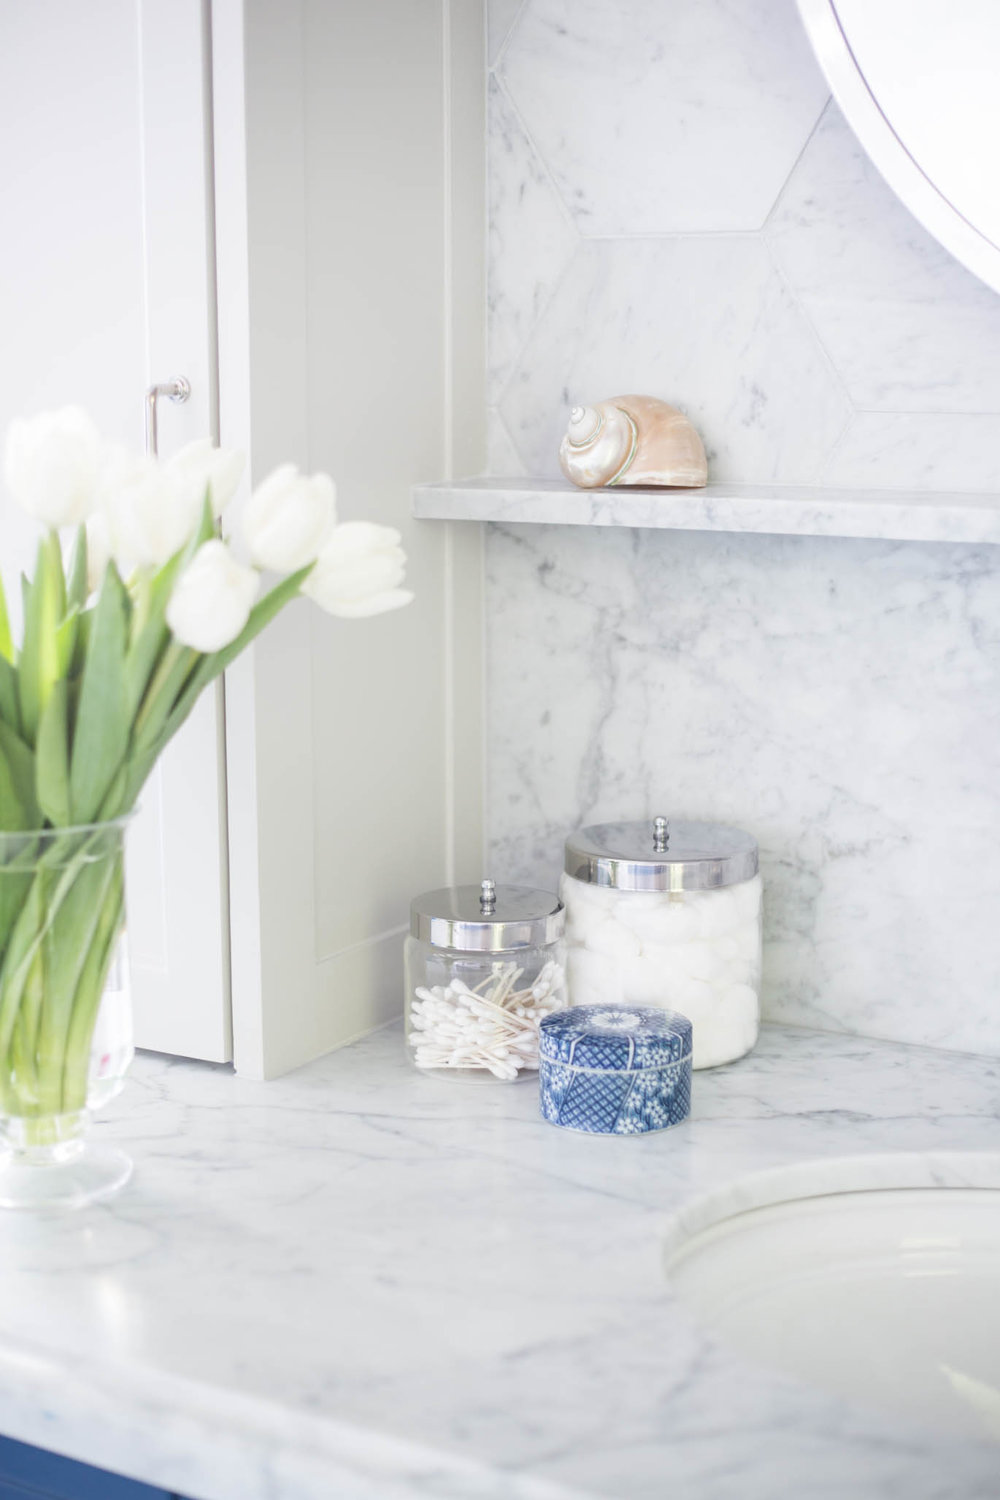 Spectacular Marble ledge at bathroom sink Carla Aston Designer Tori Aston Photographer